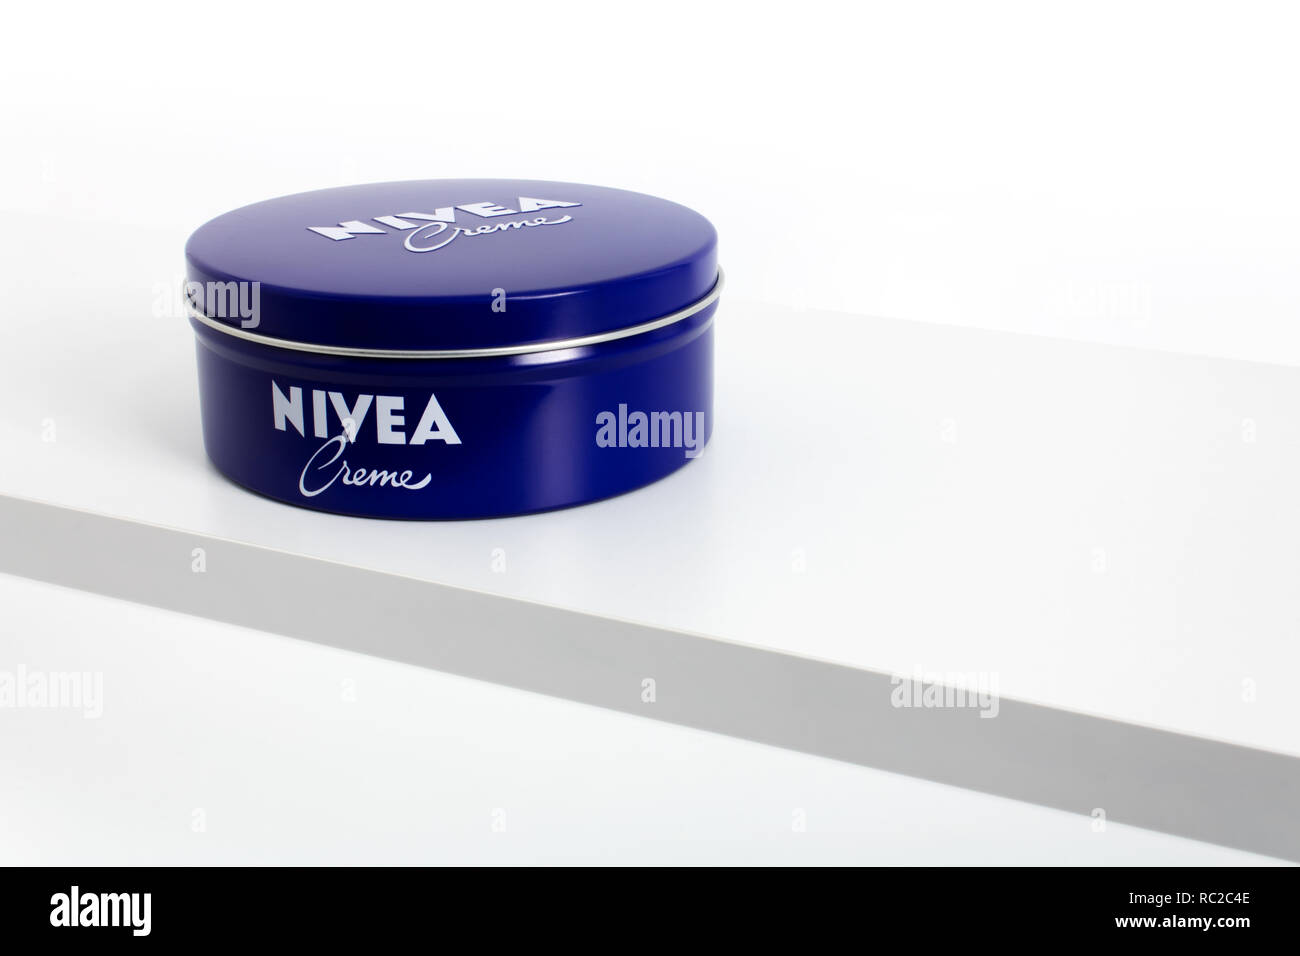 Prague, CZECH REPUBLIC - JANUARY 9, 2019: Nivea Creme 400ml, the world's famous skin cream skin cream in a metal jar laid on white shelf - Stock Image